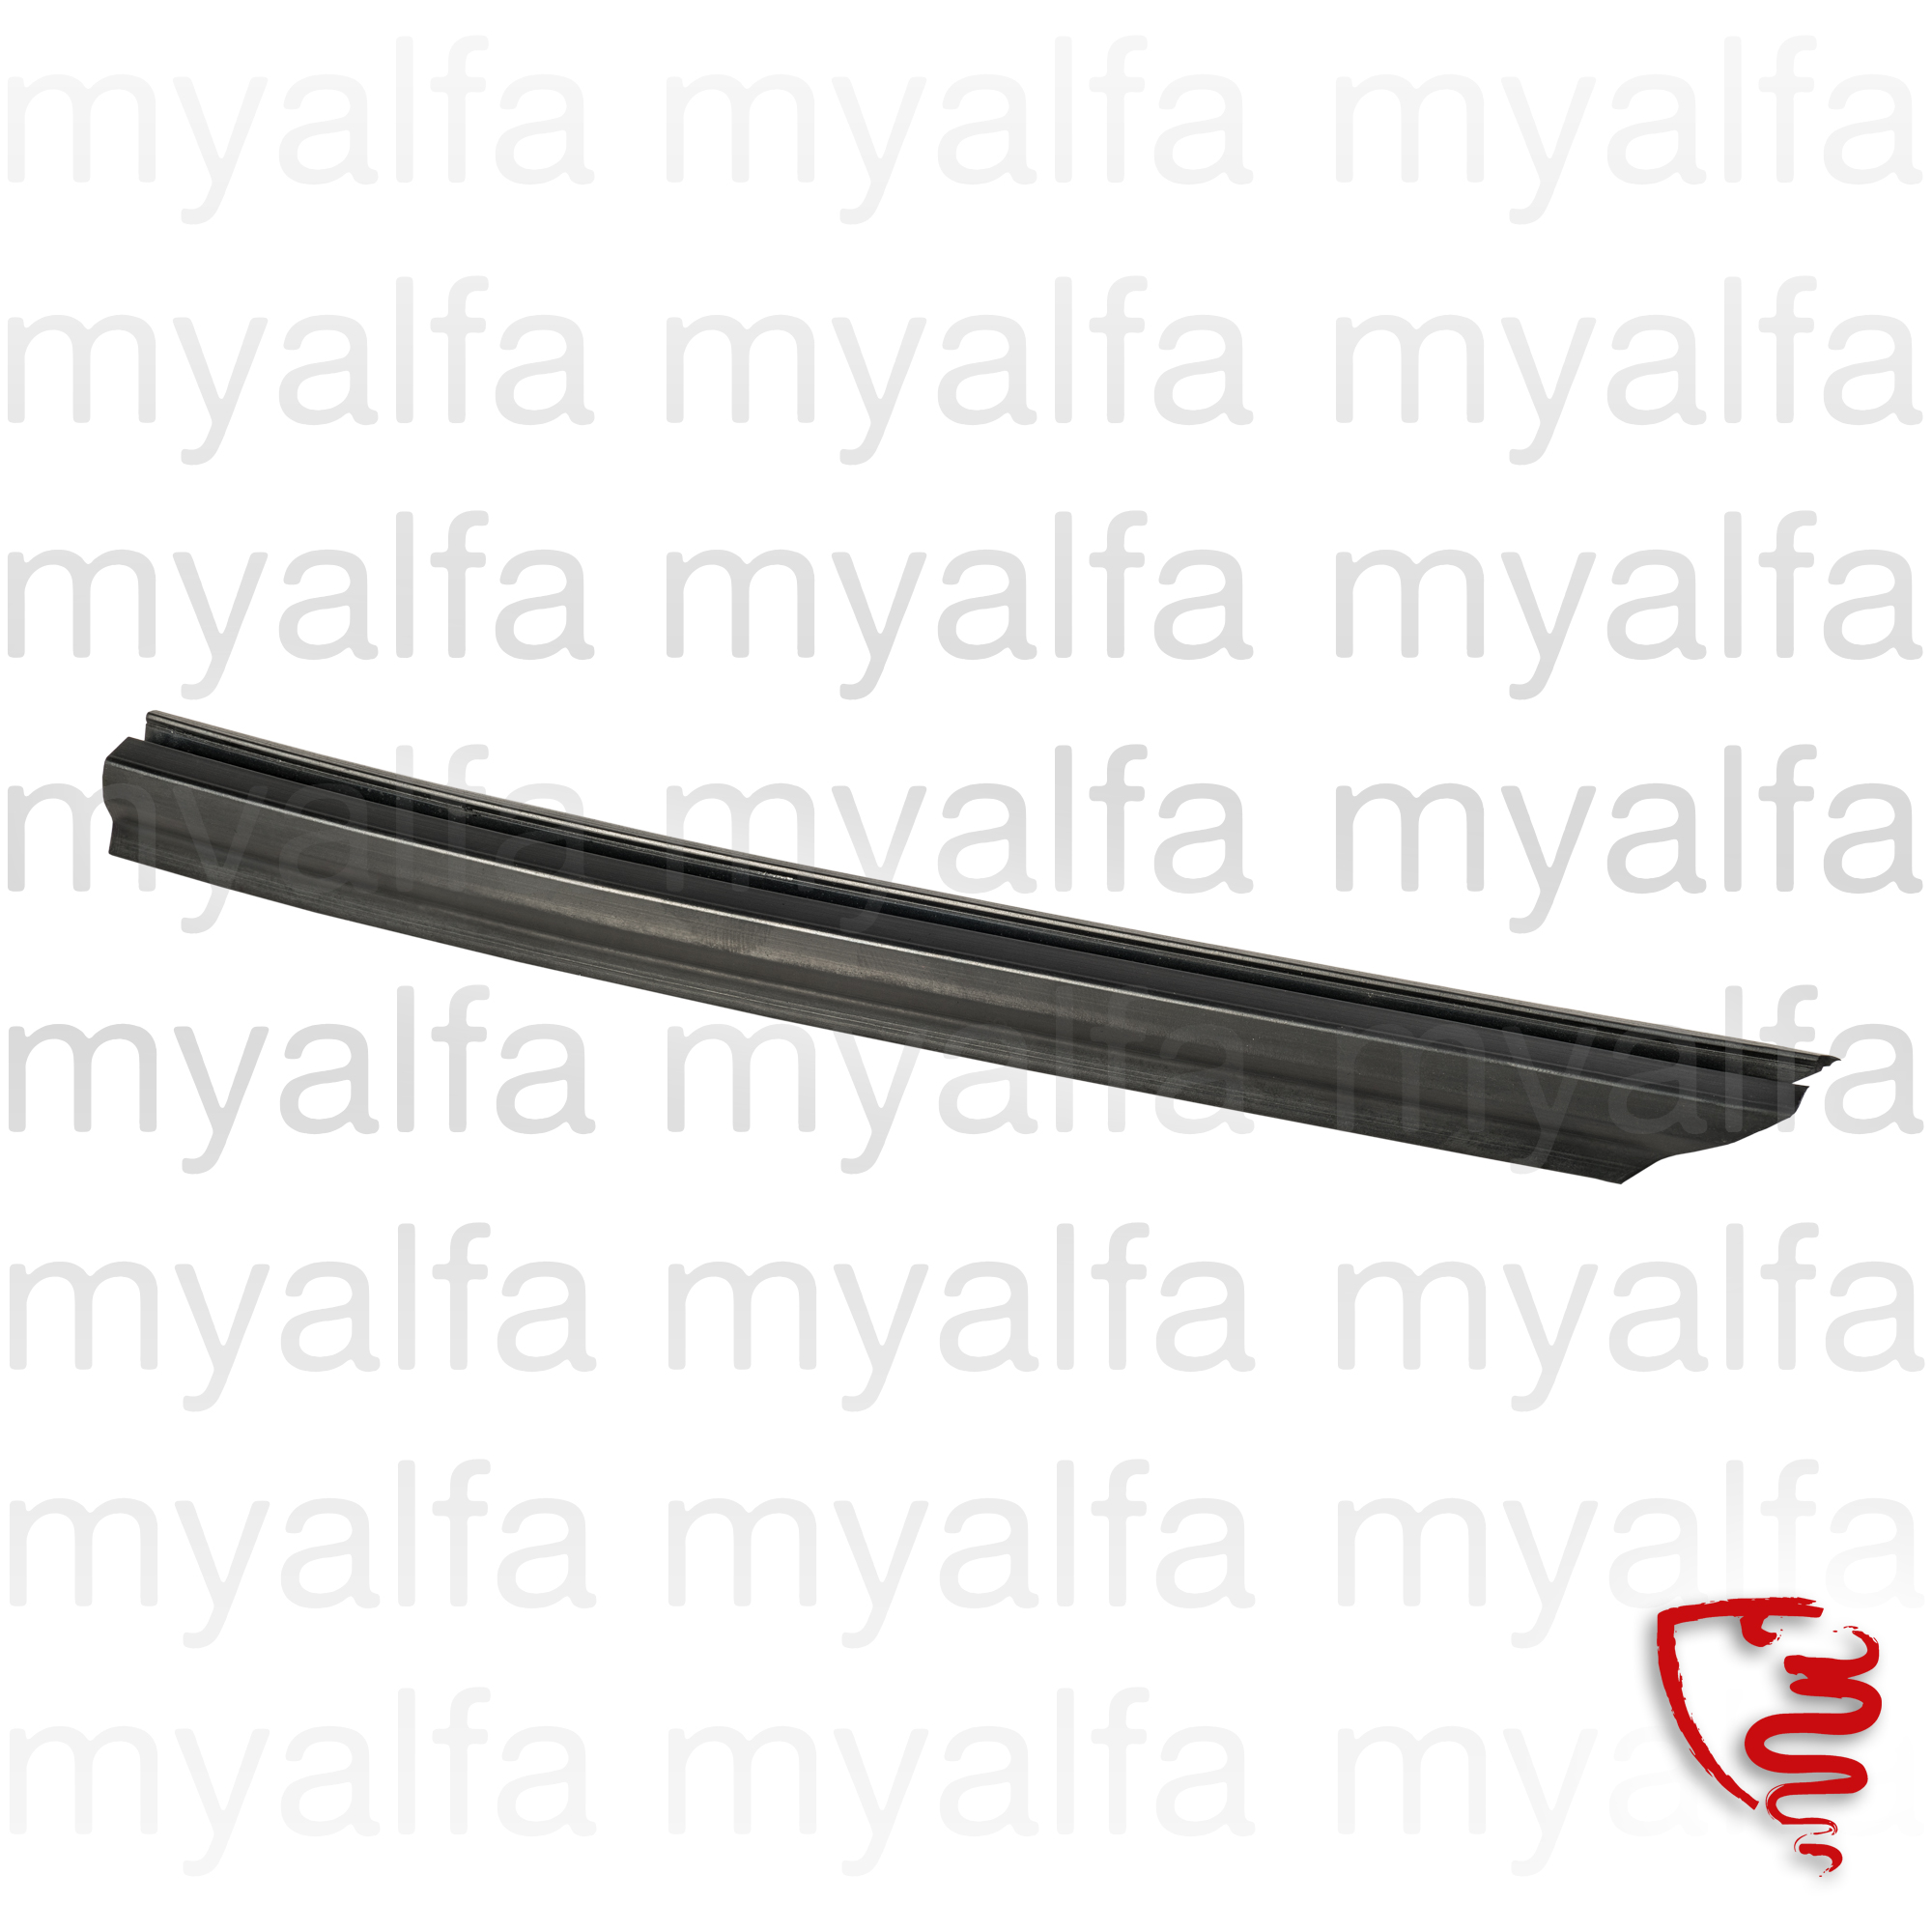 Board rubber clean grill windscreen Spider - Dta. for 105/115, Spider, Body parts, Rubber parts, Body Seals/Grommets